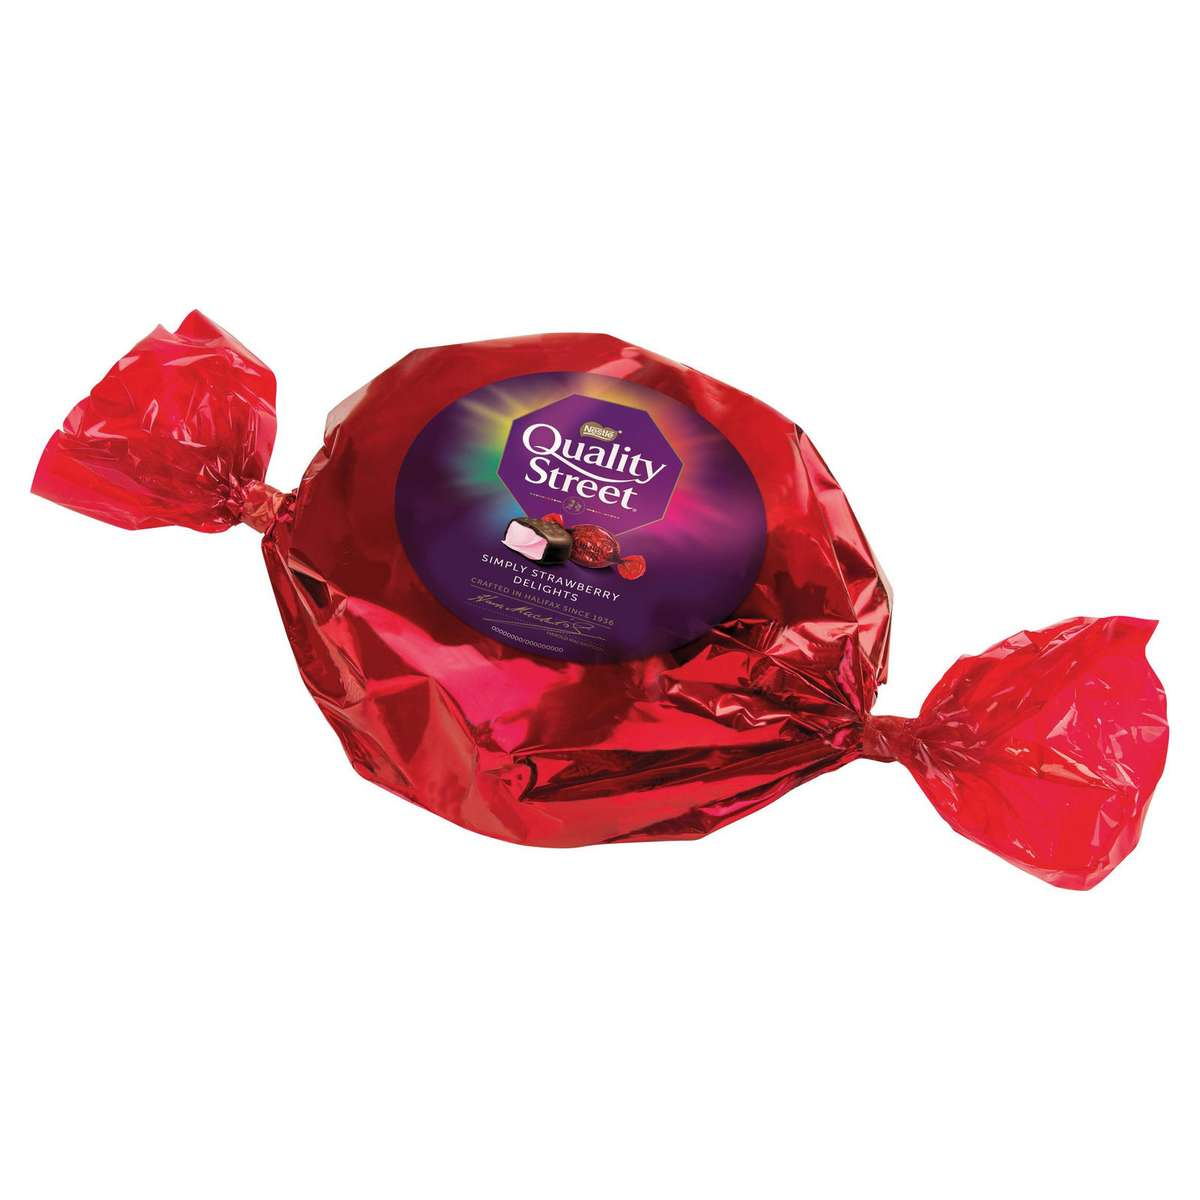 Quality Street Simply Strawberry Delights 385g Purely Purple